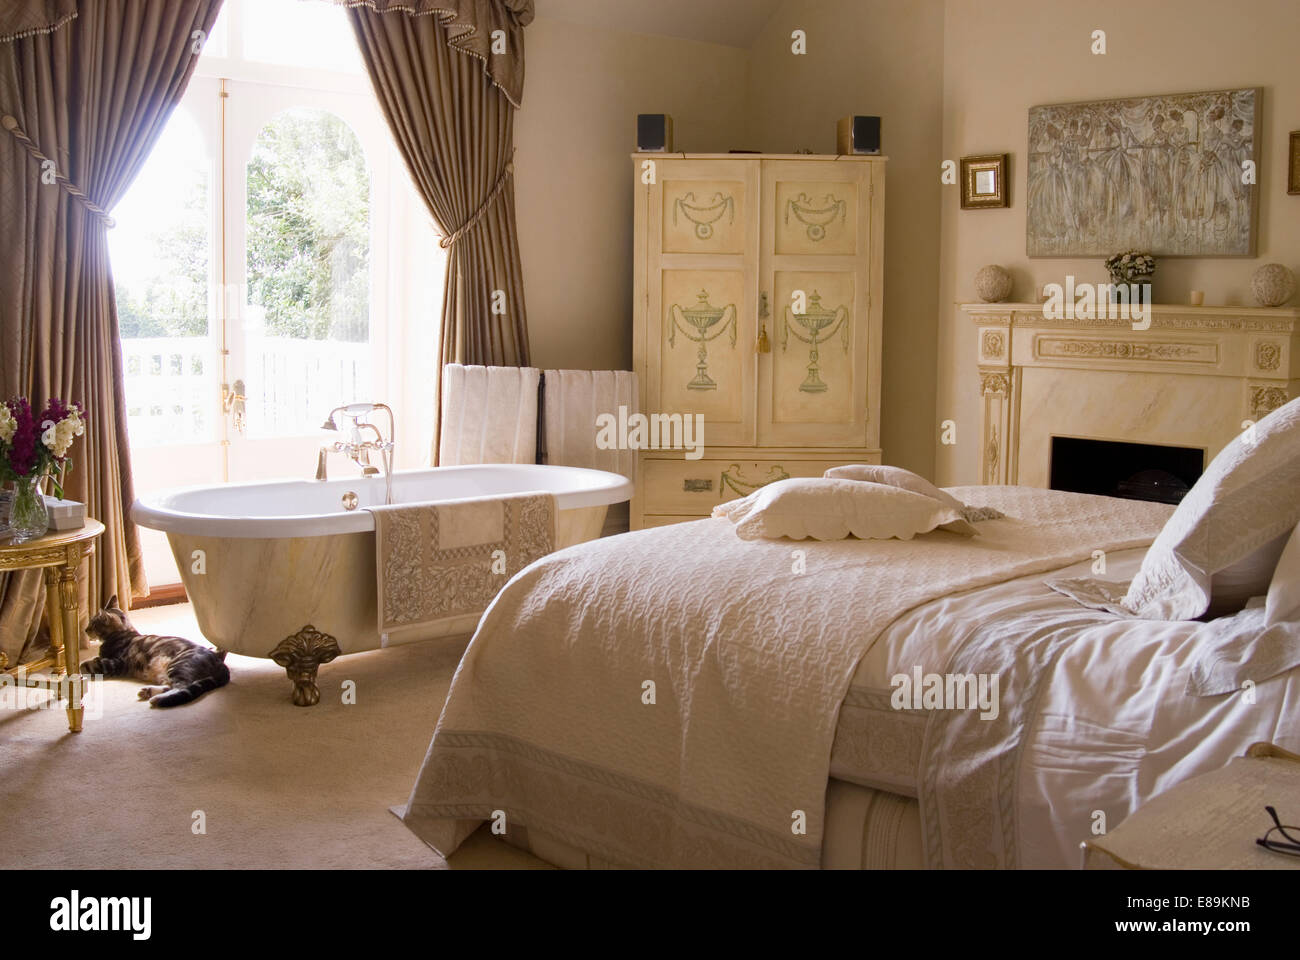 Rolltop Bath In Country Bedroom With Cream Linen On Bed And Painted  Wardrobe In Corner Of The Room